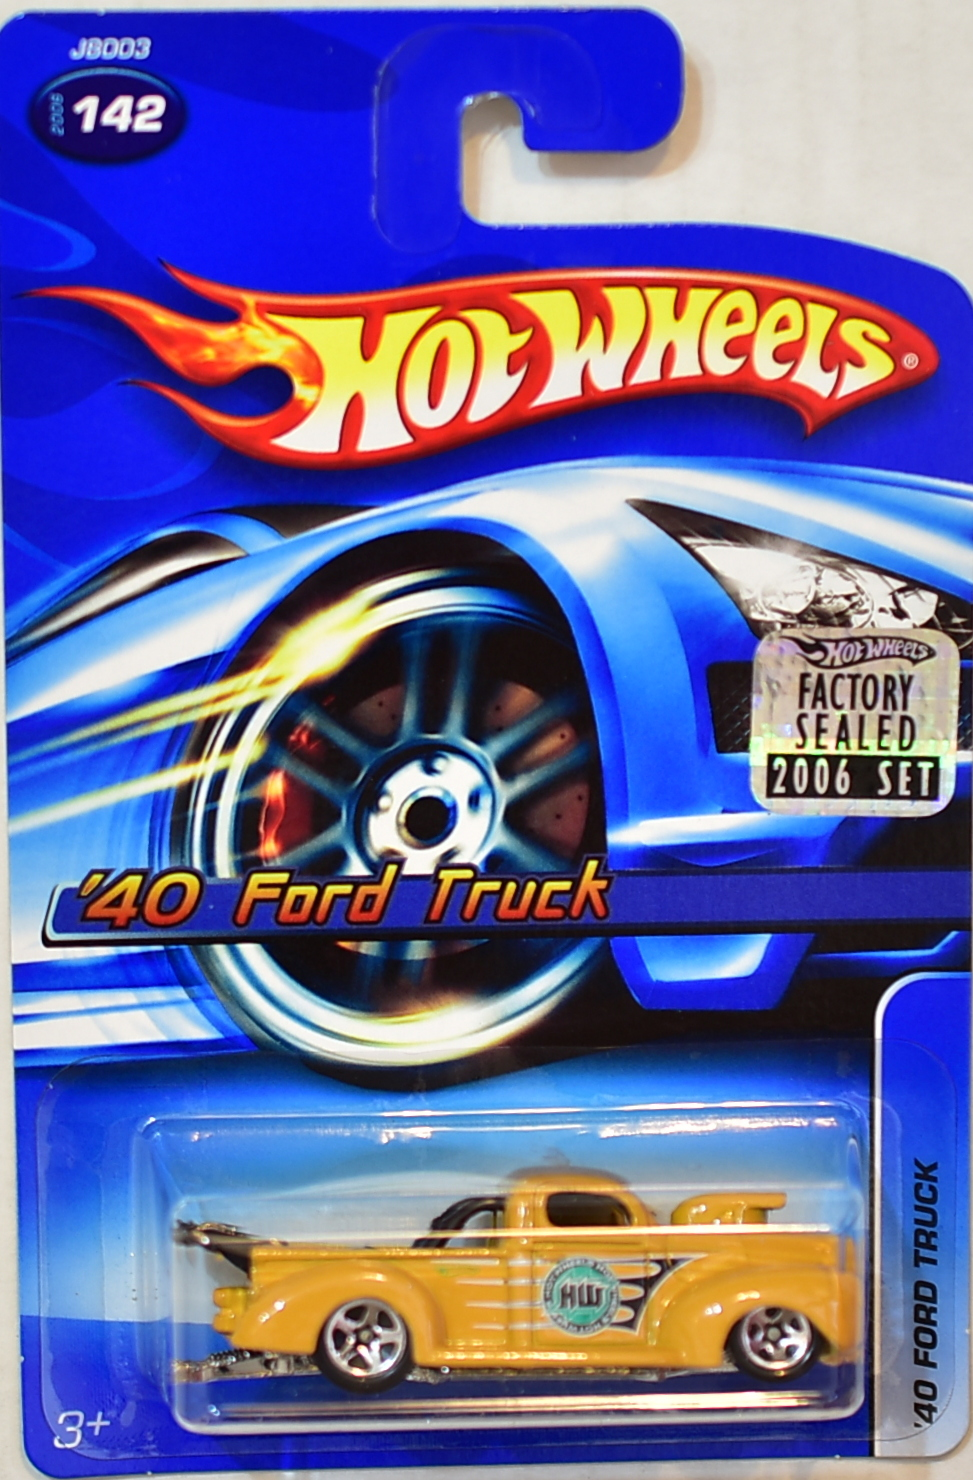 HOT WHEELS 2006 '40 FORD TRUCK #142 YELLOW FACTORY SEALED